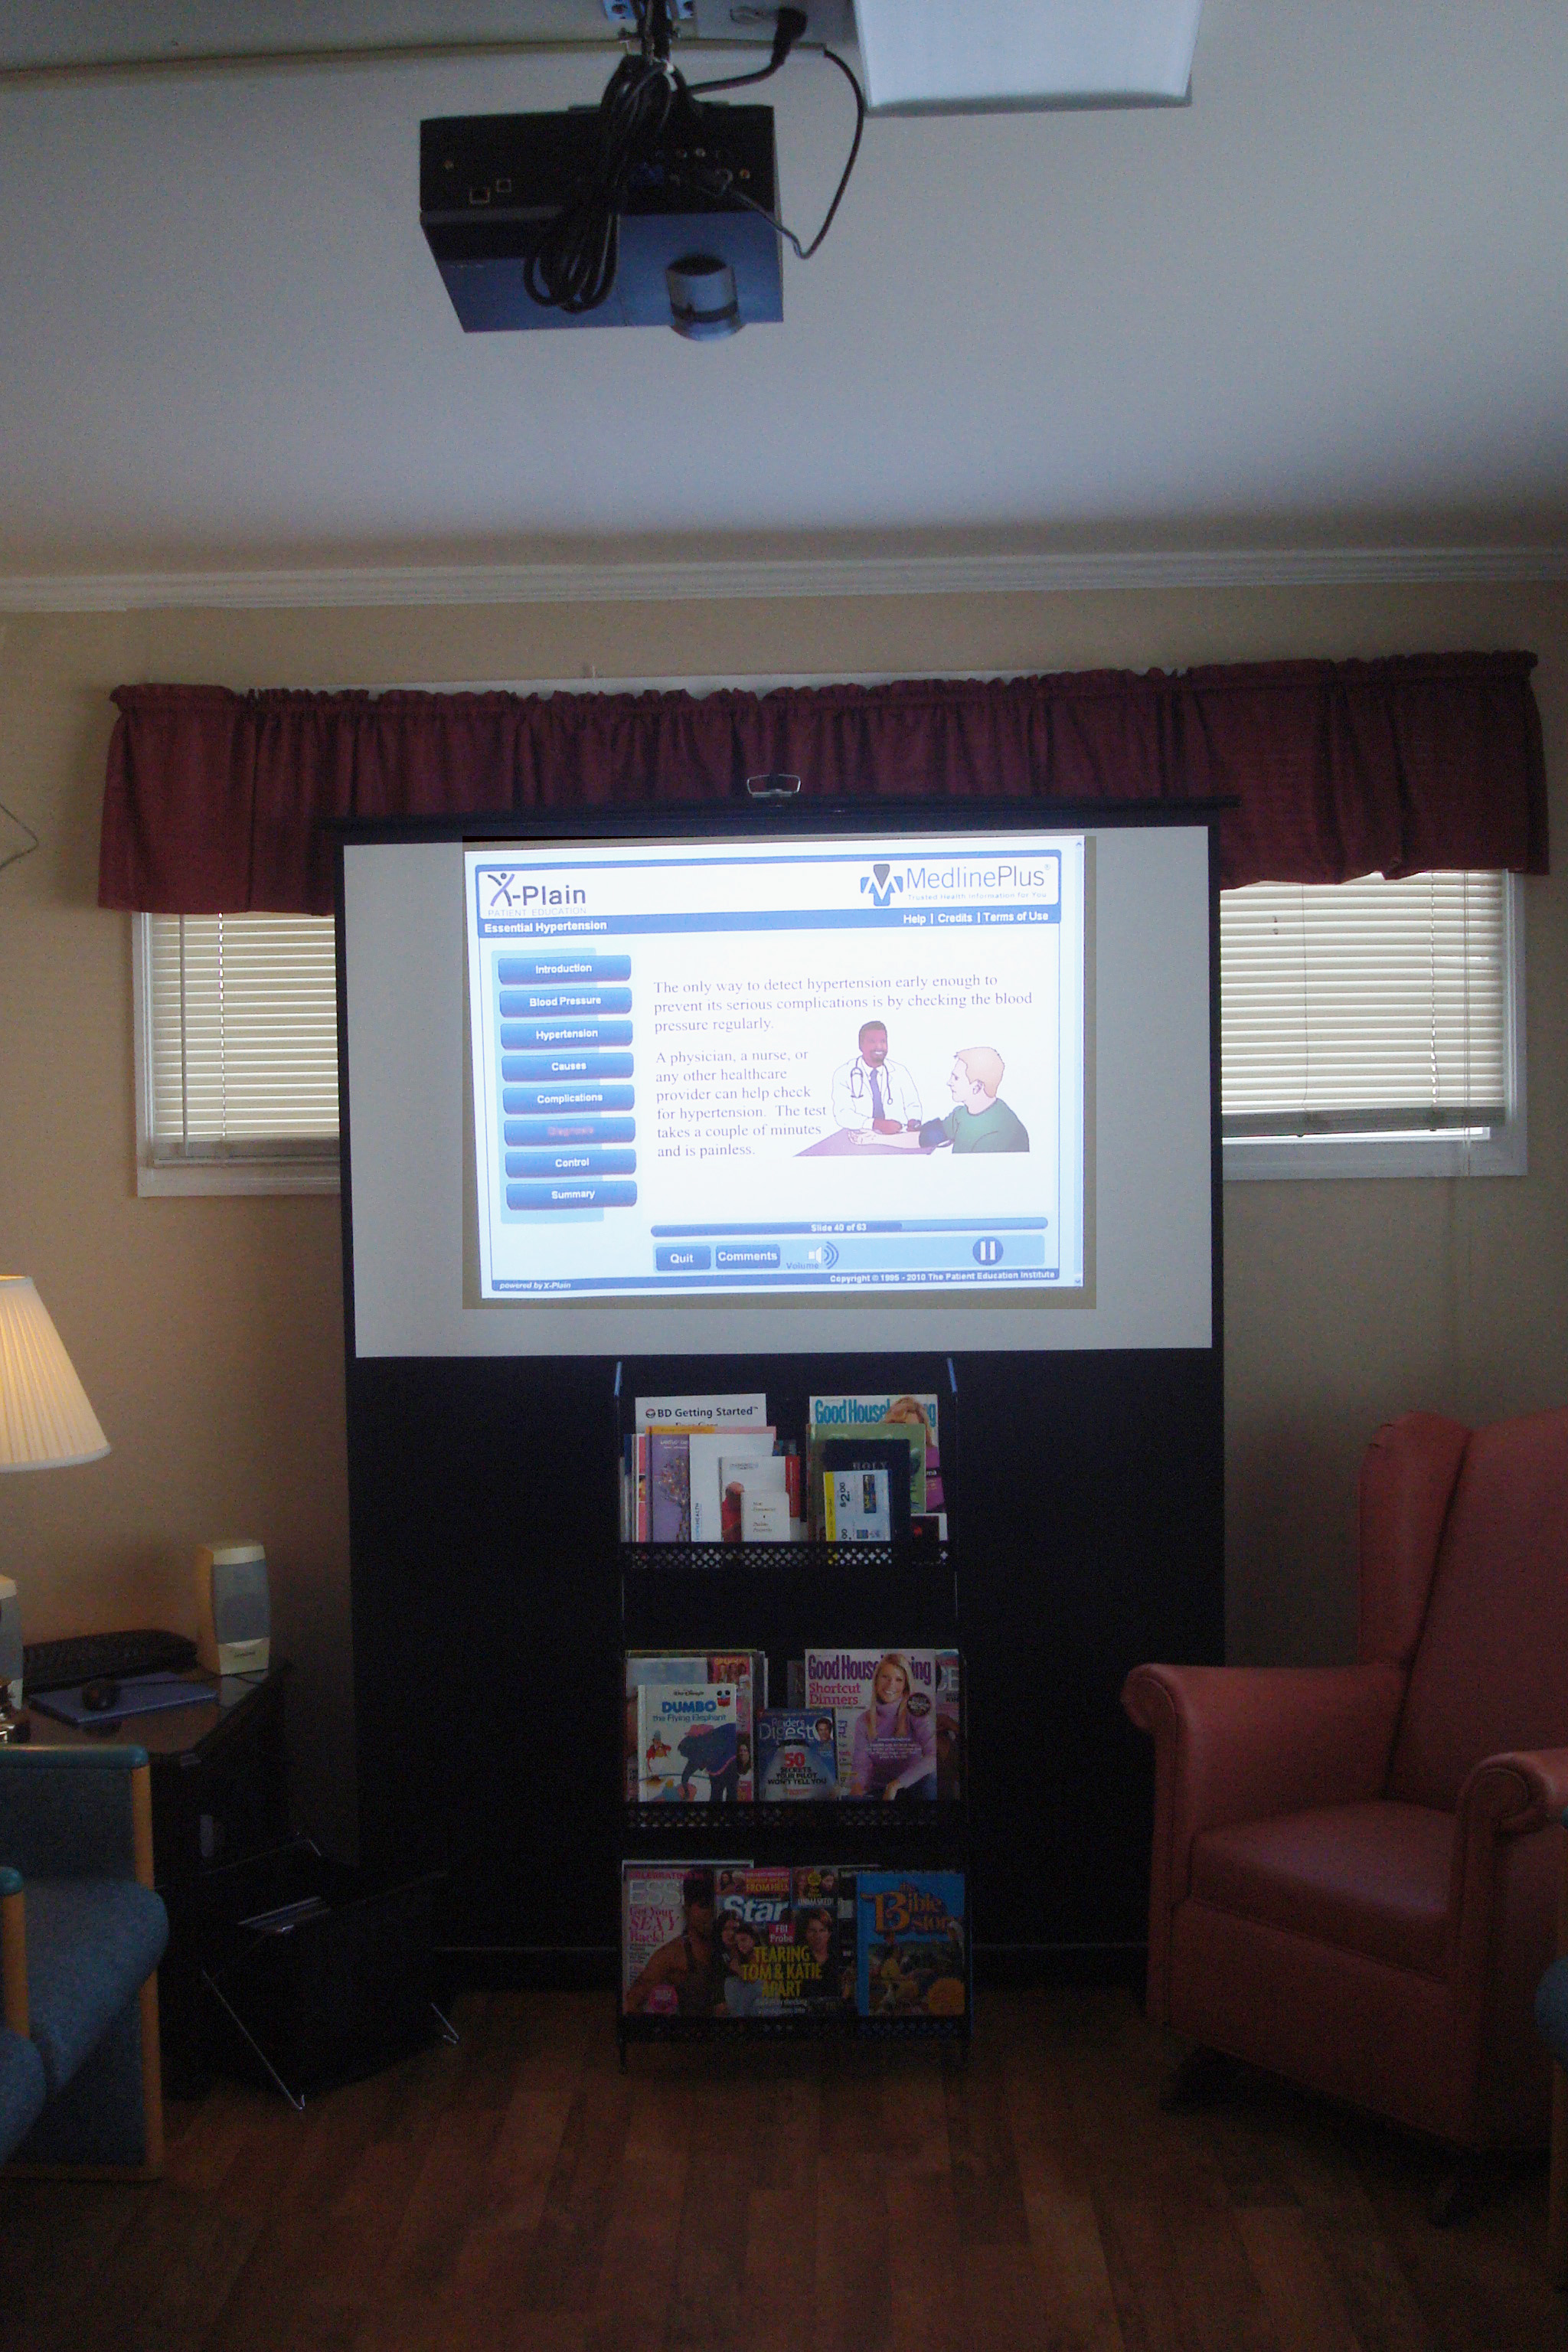 Projector and screen setup in Orangeburg waiting room